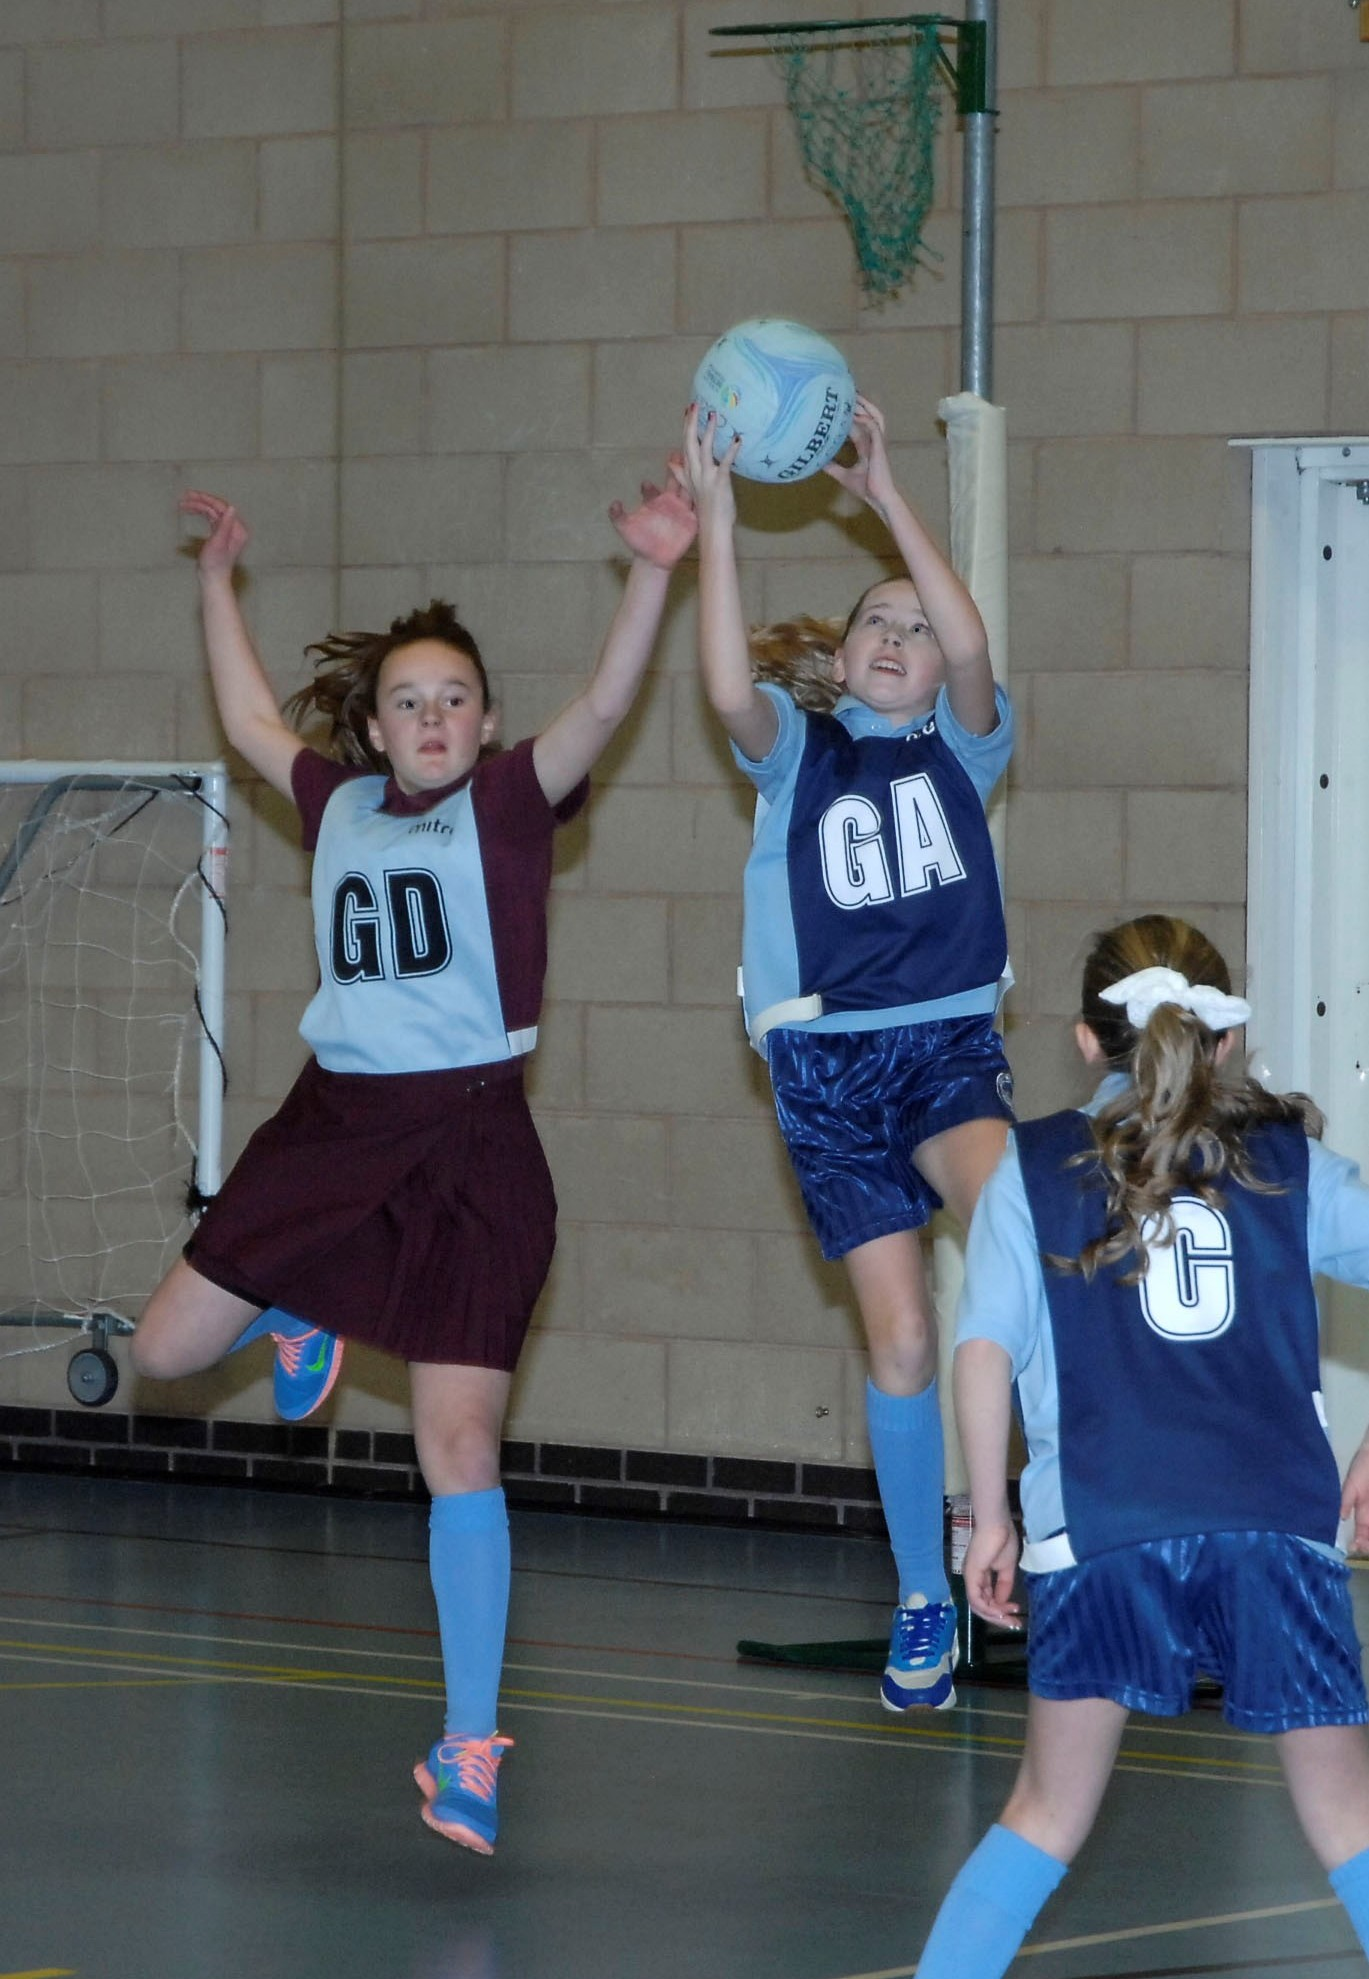 SUMMER SPORT: Netball will be one of the sports featured in a sports and play family fun day at King Square and Central Park, Barry, on Saturday, July 26.